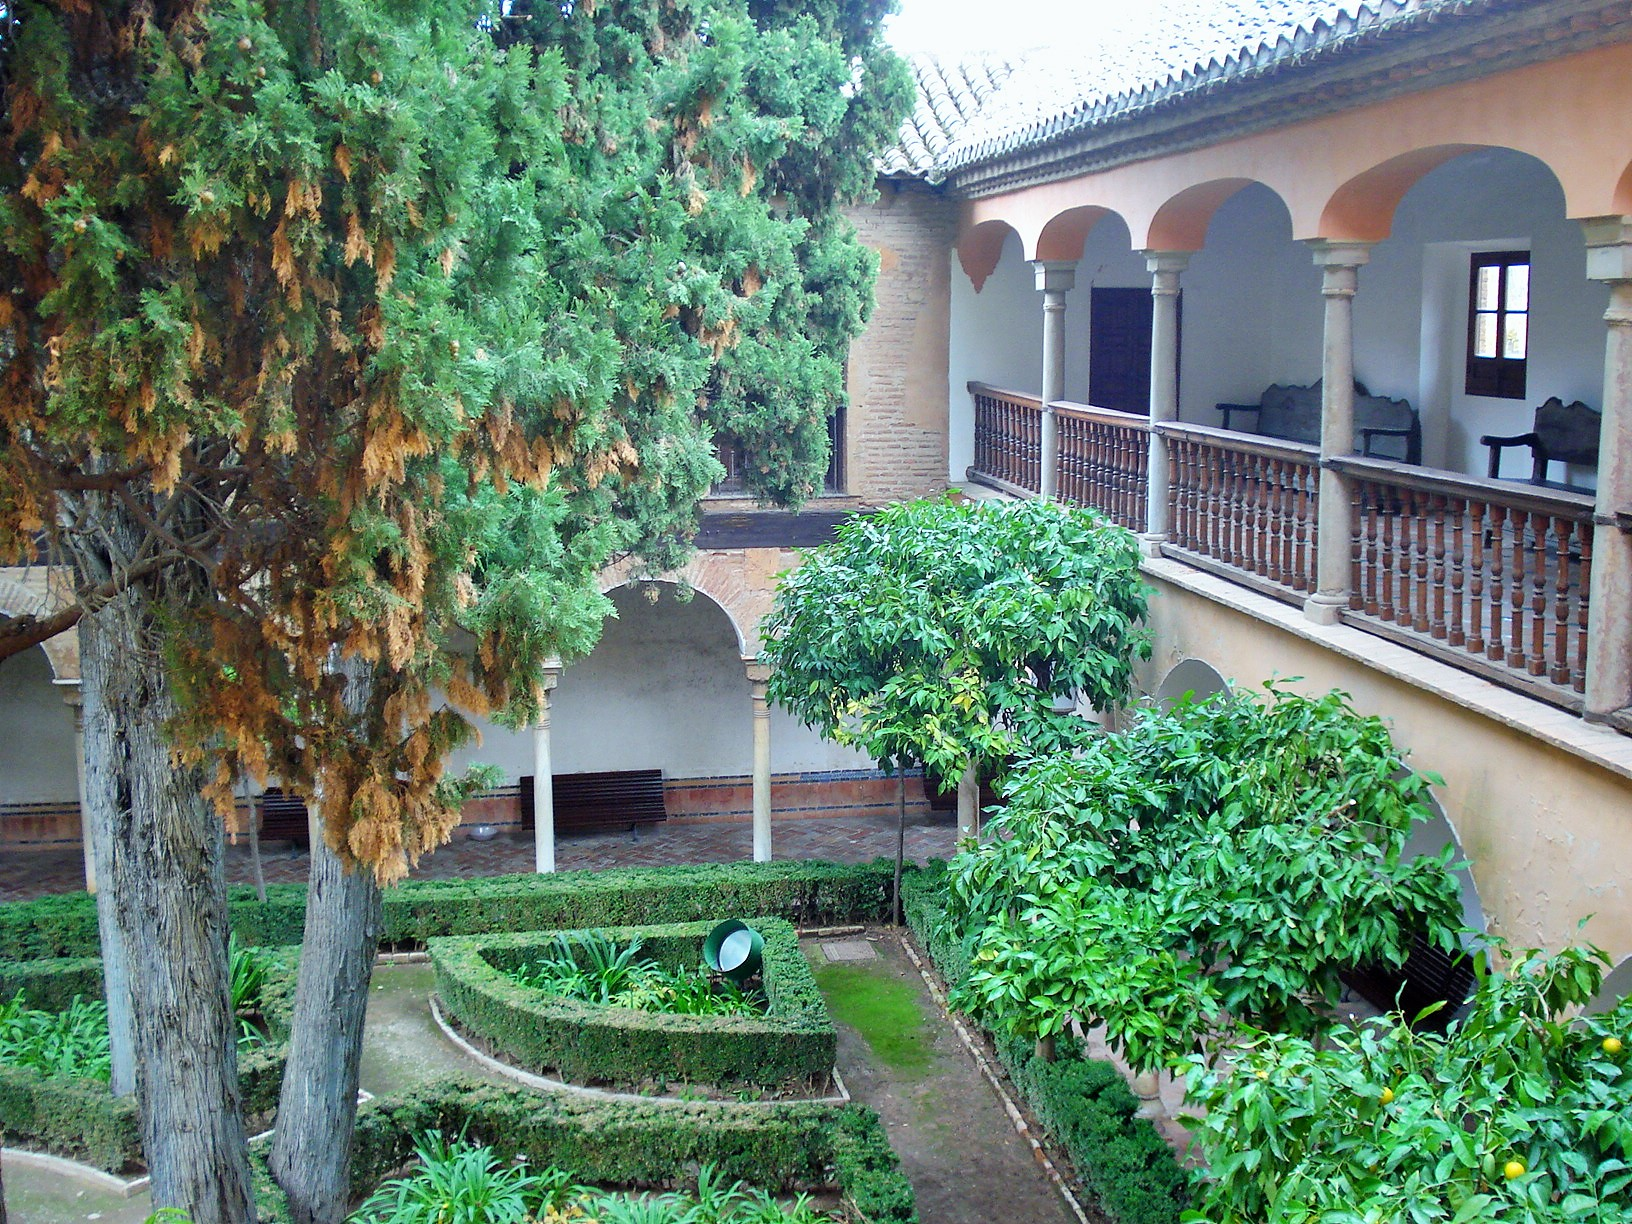 Alhambra s patio de lindaraja courtyards in granada for Patios de granada